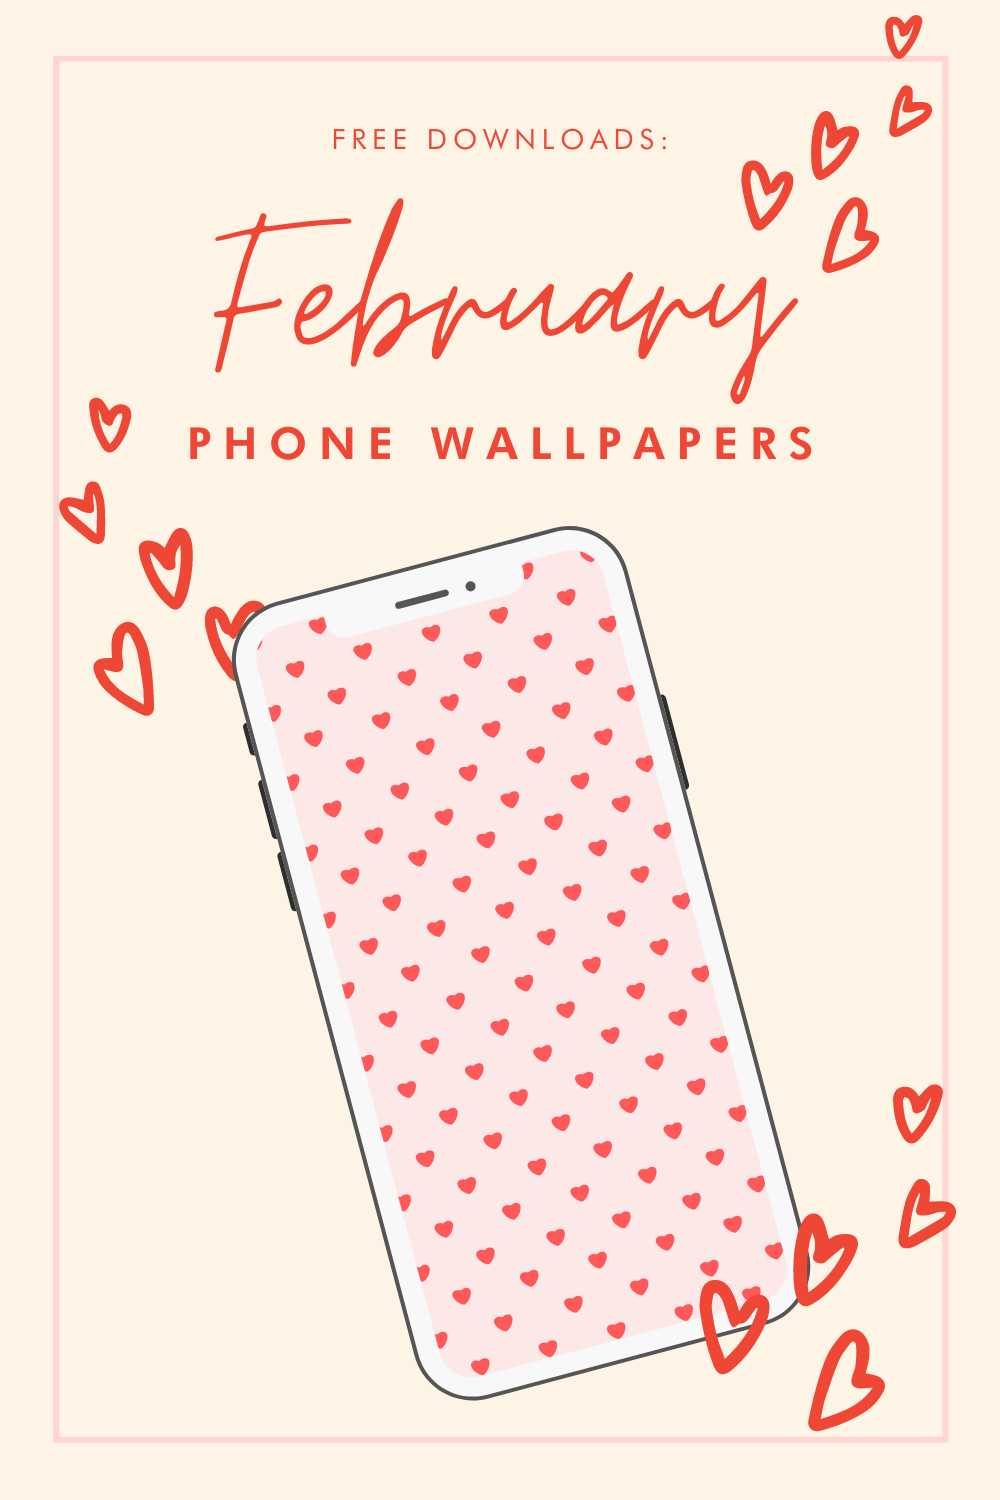 Free Downloads: February Phone Wallpapers